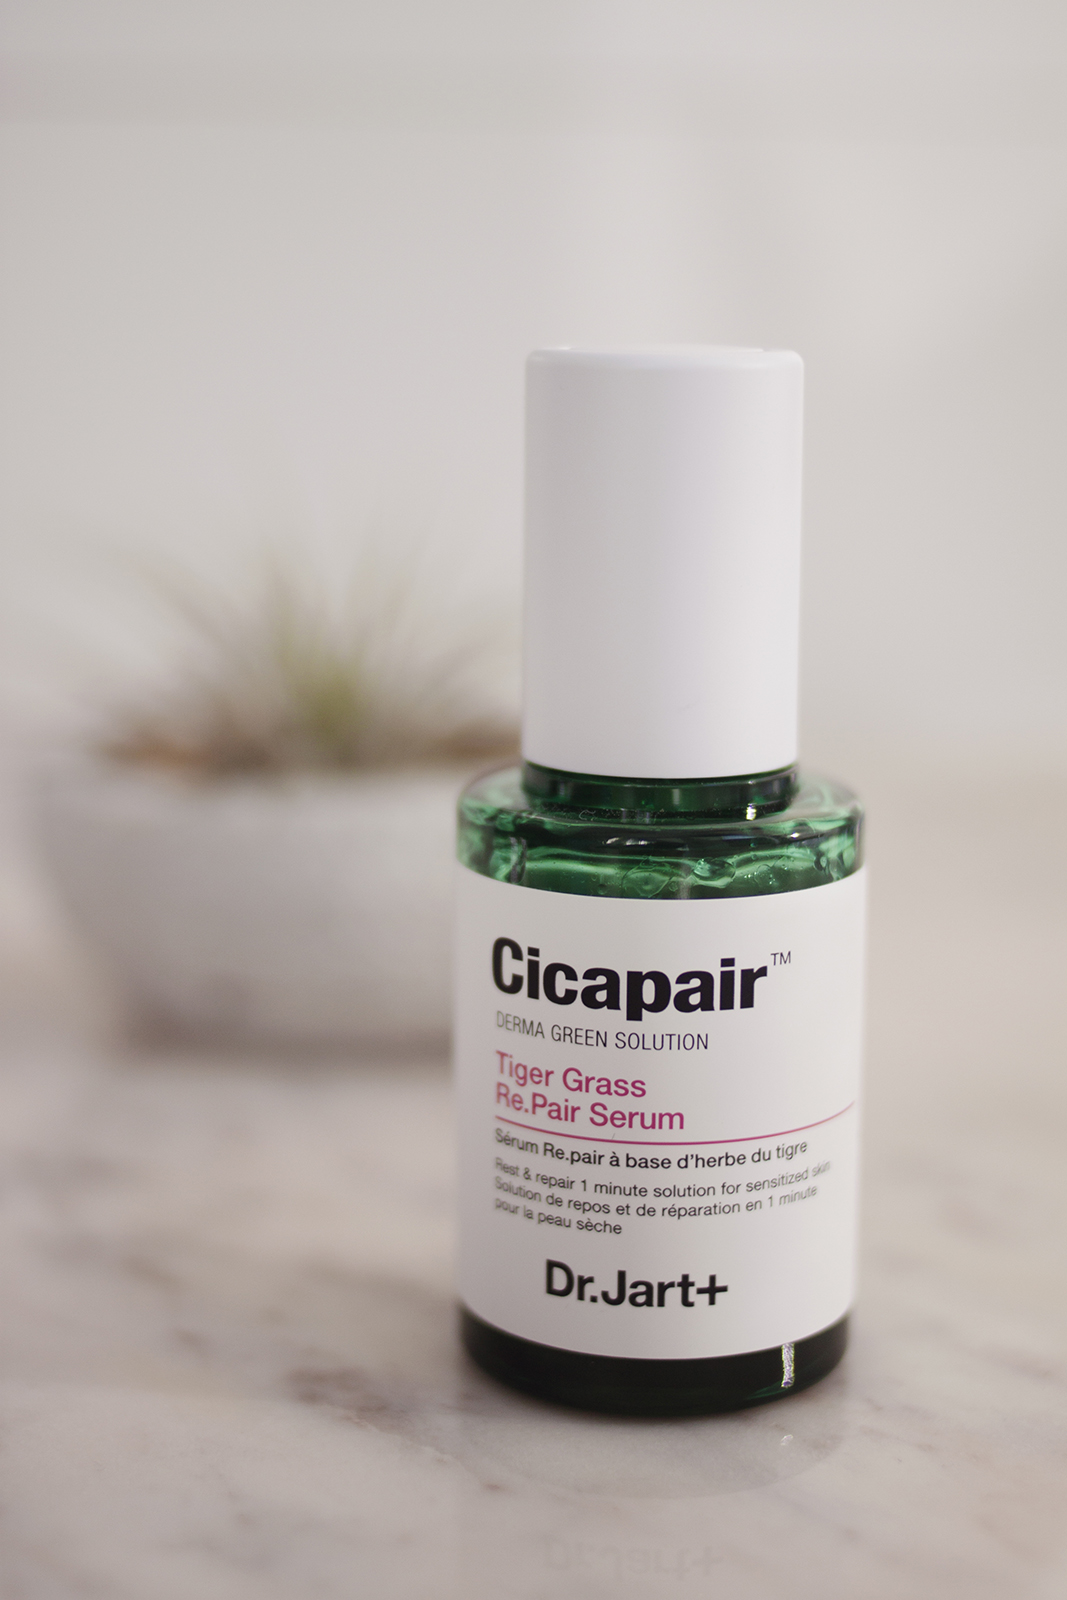 Niacinamide + Hydrating Serum - Is this entire post me talking about replacing Deciem products? Almost. I've mentioned in the past how much my skin benefitted from using a dedicated niacinamide serum, namely the Niacinamide 10% + Zinc 1% from The Ordinary, and although it meant paying a fair bit more, I wanted to try something else. The Dr. Jart+ Cicapair Tiger Grass Re.Pair Serum (AU) caught my eye because niacinamide is listed as the fifth ingredient. It's probably not in there at 10%, but the bonus is that this serum also contains glycerin as well as various plant oils for hydration. With my oily skin, find this doubles up as a hydrating serum as well as my dose of niacinamide (although I do follow with a moisturiser or oil afterwards) so it's a two in one.This serum is based around what Dr. Jart+ refers to as the Centella Asiatica Complex, which is a group of four extracts of the Gotu Kola plant (Tiger Grass) – Madecassoside, Madeecassic Acid, Asiaticoside, and Asiatic Acid. These extracts have been proven to be beneficial in the treatment of small wounds, burns and skin conditions like psoriasis. They encourage the skin to build fibroblasts (essential for wound-healing), and collagen, while also inhibiting the development of scars. Fortunately I don't have any burns on my face, but that sounds like an excellent way to help your skin repair itself after a breakout to me. If you have particularly sensitive or reactive skin this could definitely be one to look at. The product is a pale green, watery liquid housed in an excellent dropper bottle. When you unscrew the lid, a button pops up from the top and you press it to dispense the product. When you screw the lid back on, the dropper automatically refills itself, and I find that one pump is the perfect amount for my face – it's the little things, you know? I'm glad I decided to take a chance on this because so far I'm really enjoying it and I think it's a great serum.